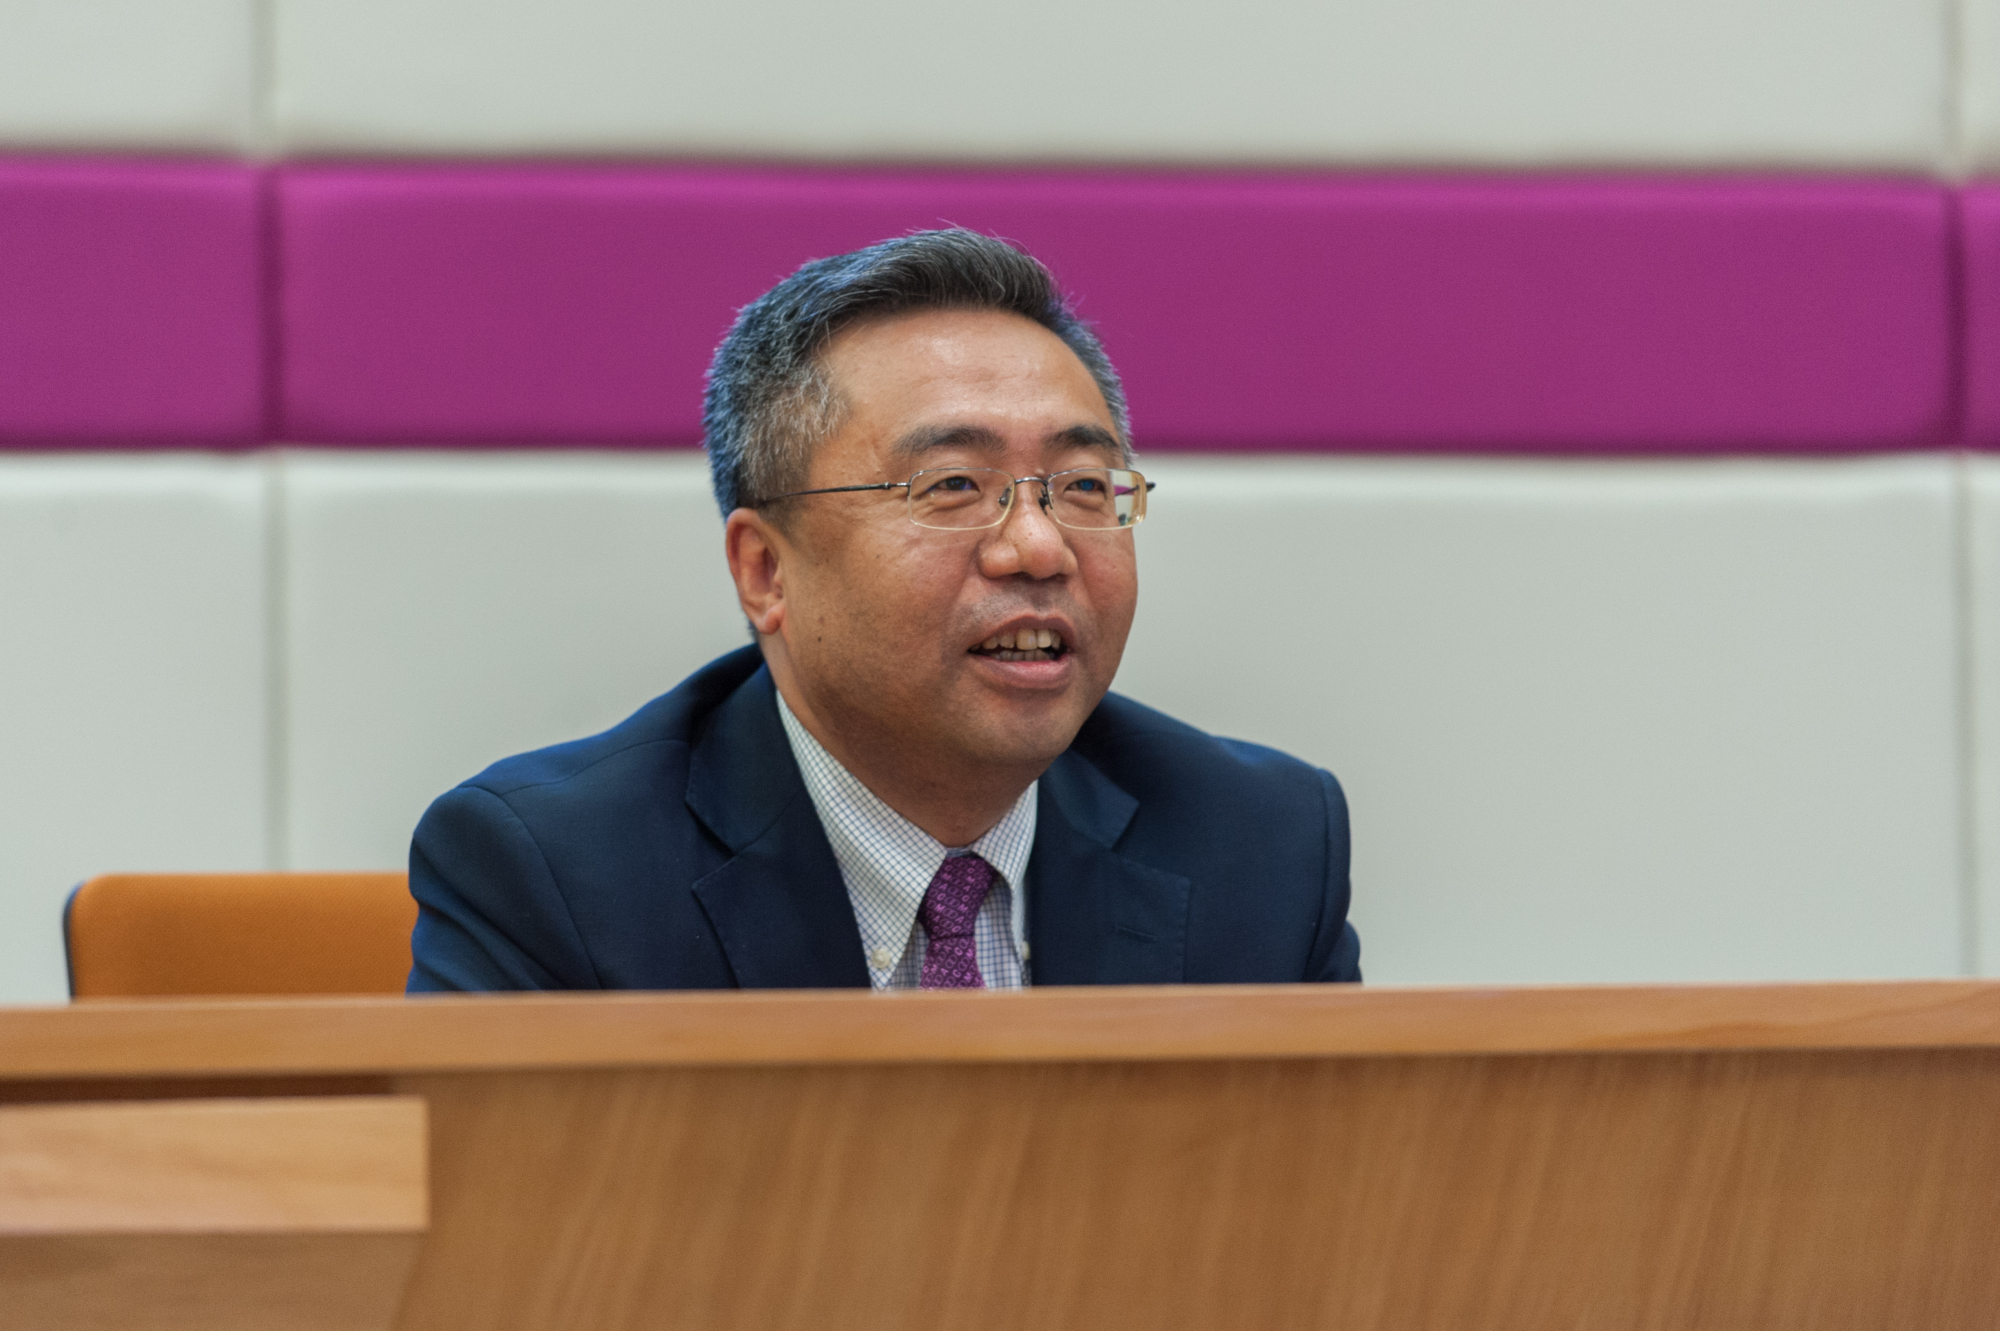 Deputy Commissioner, MFA Commissioner's Office, HKSAR, delivered a lecture at HKBU